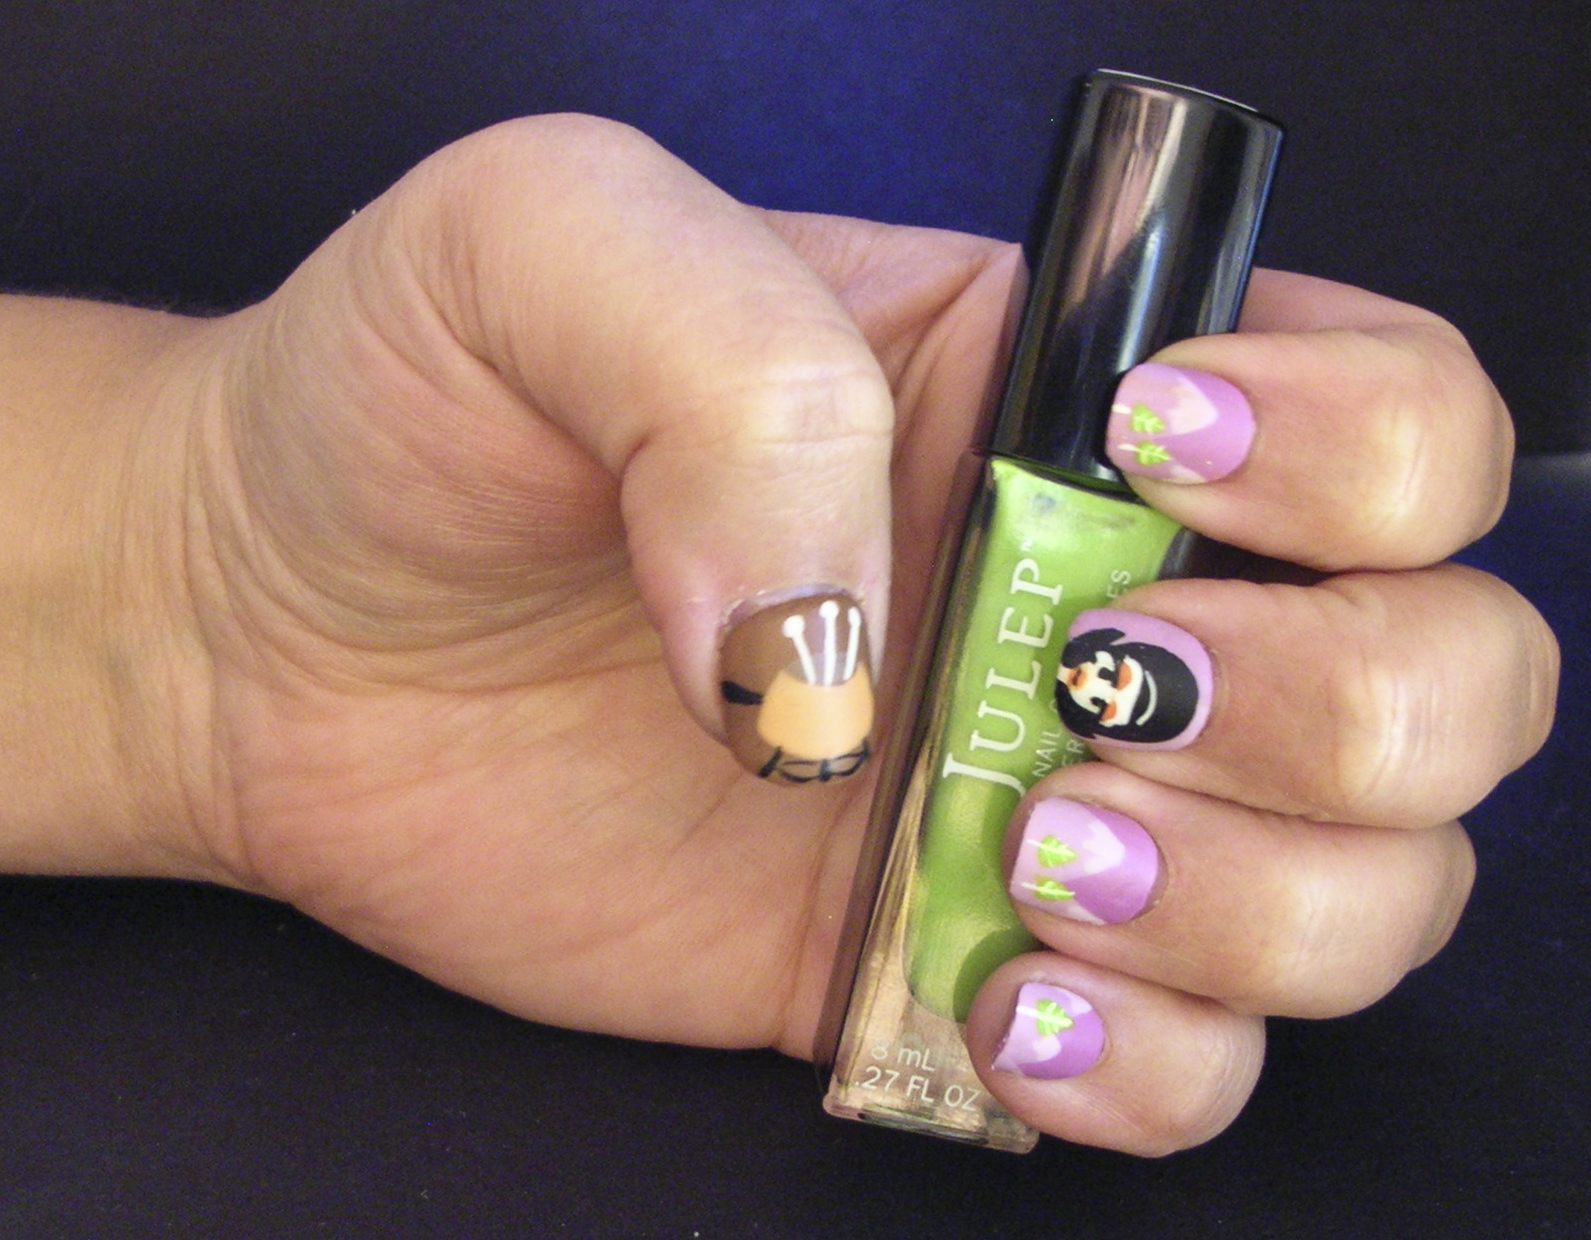 Ecklipsed By Color Lowbrow Nail Art Inspired By Shags Fondue Set